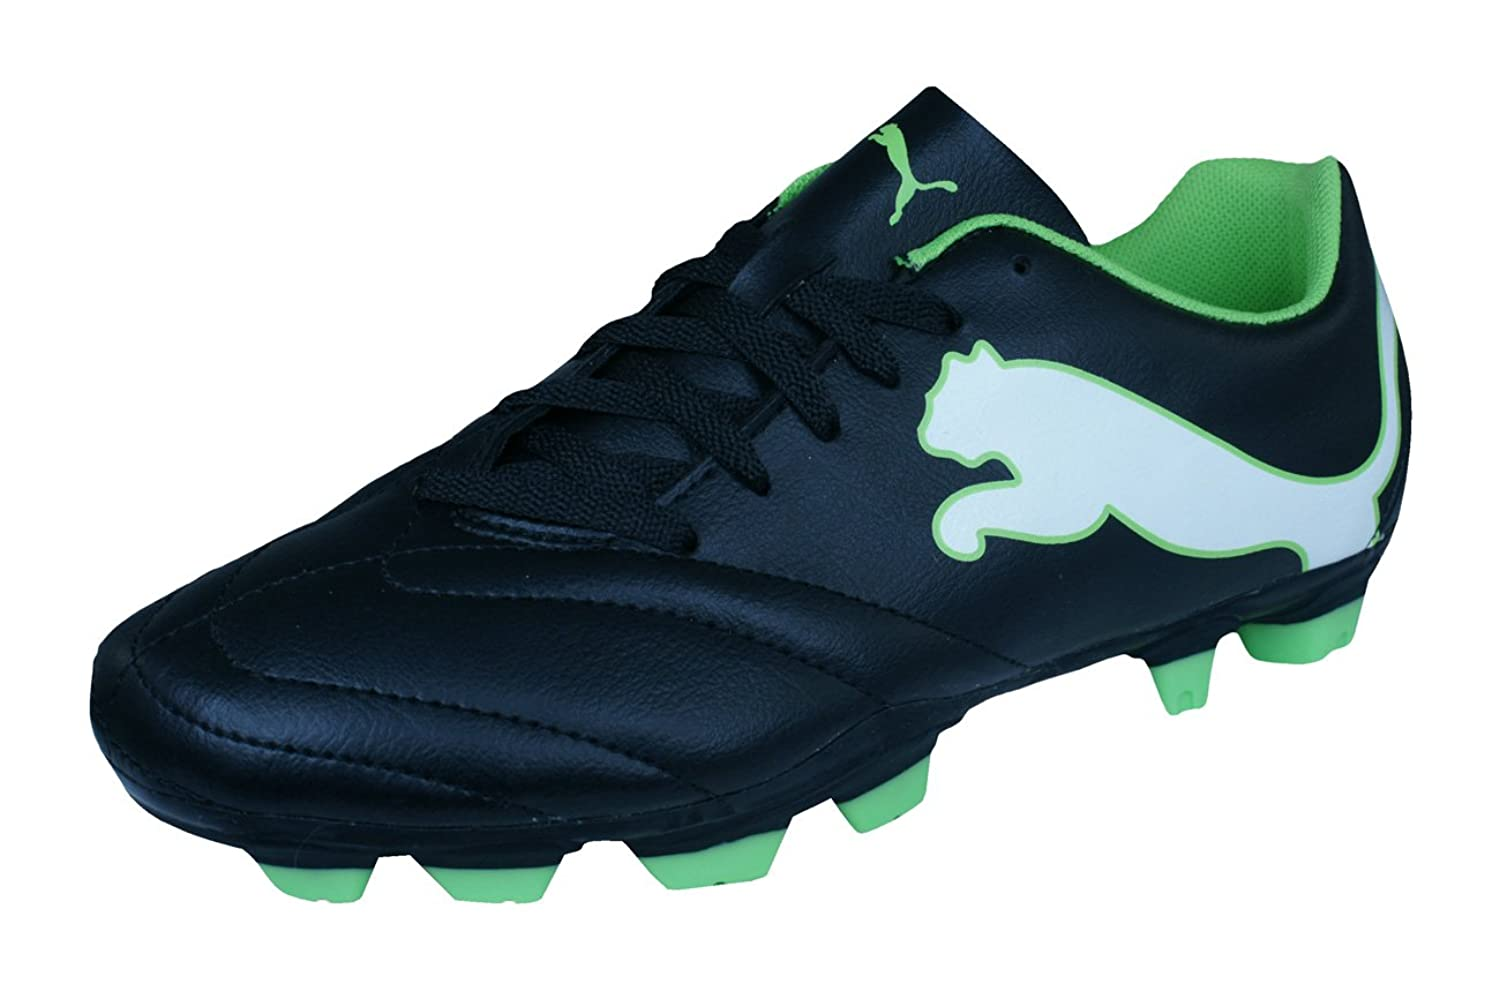 Puma Velize FG JR Boys Soccer Boots / Cleats [並行輸入品]